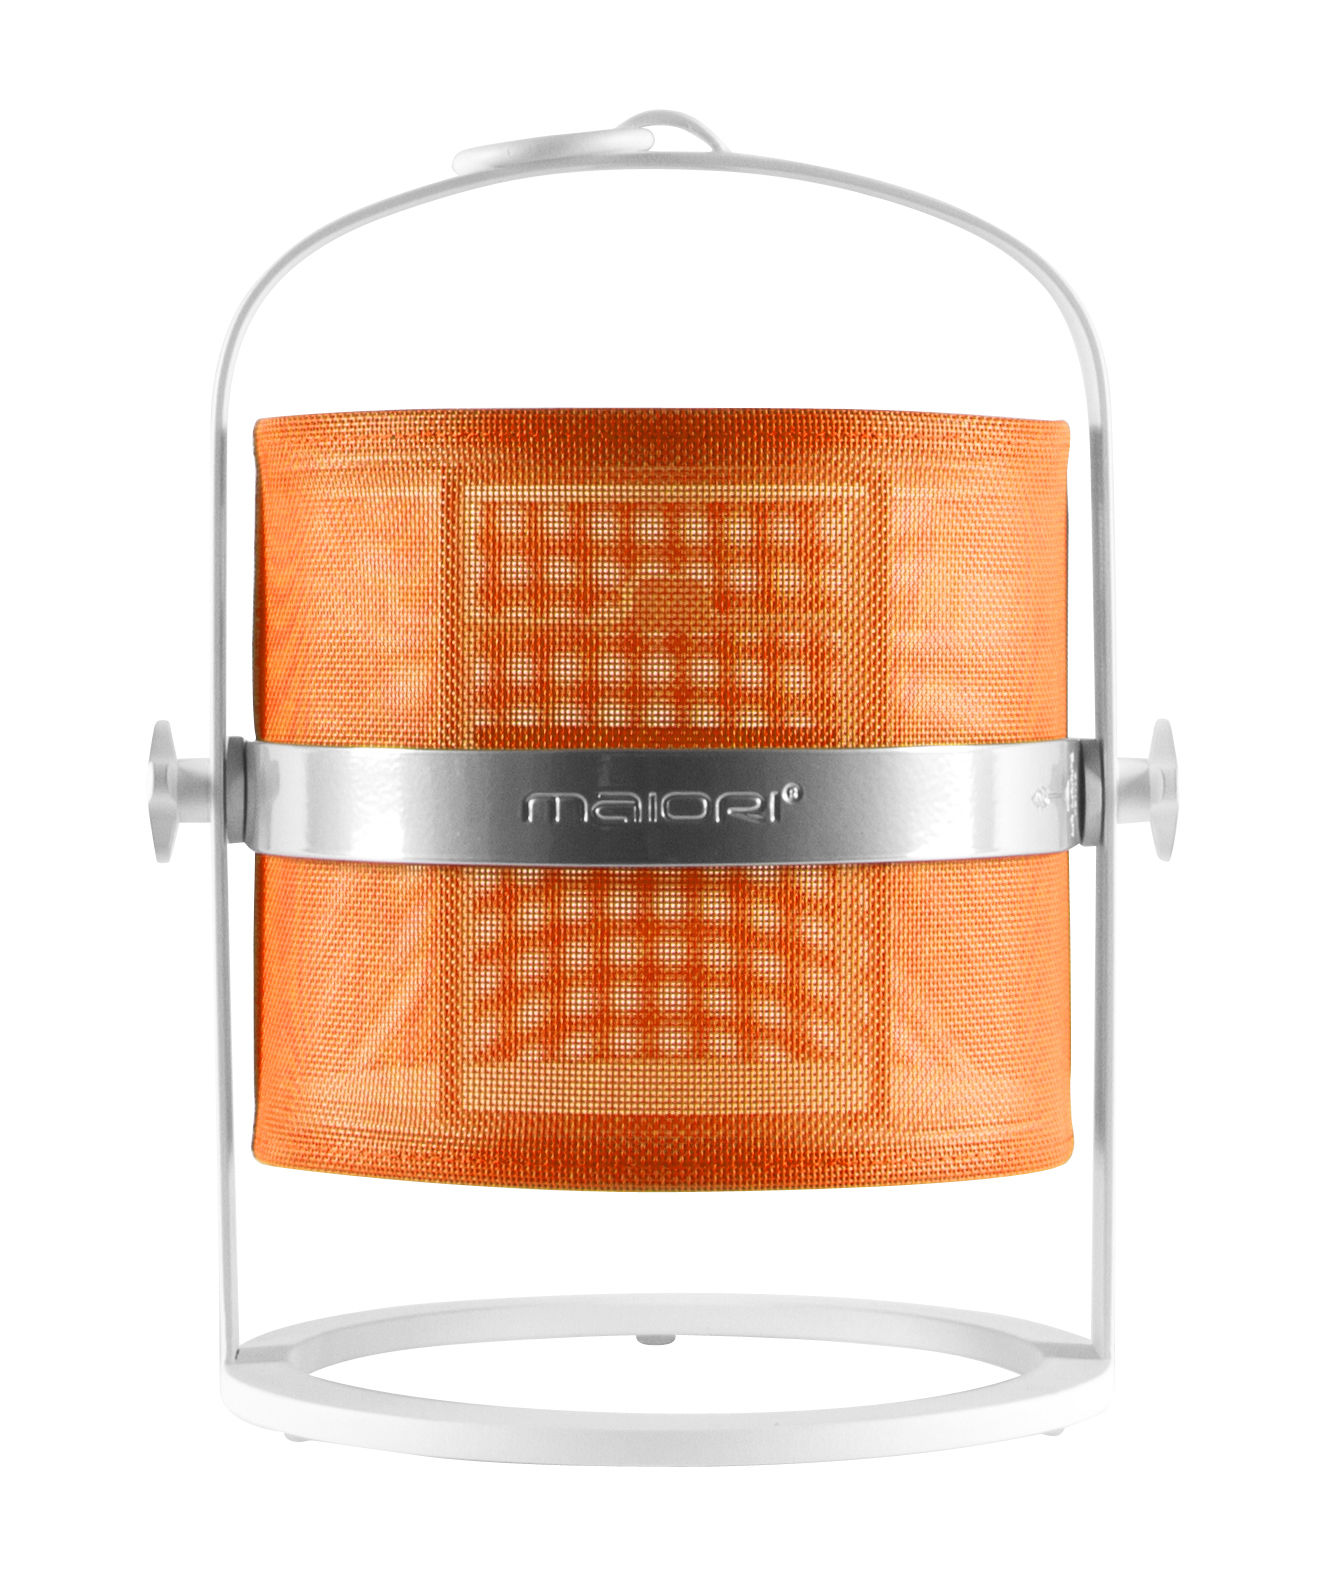 lampe solaire la lampe petite led sans fil structure blanche orange structure blanche maiori. Black Bedroom Furniture Sets. Home Design Ideas